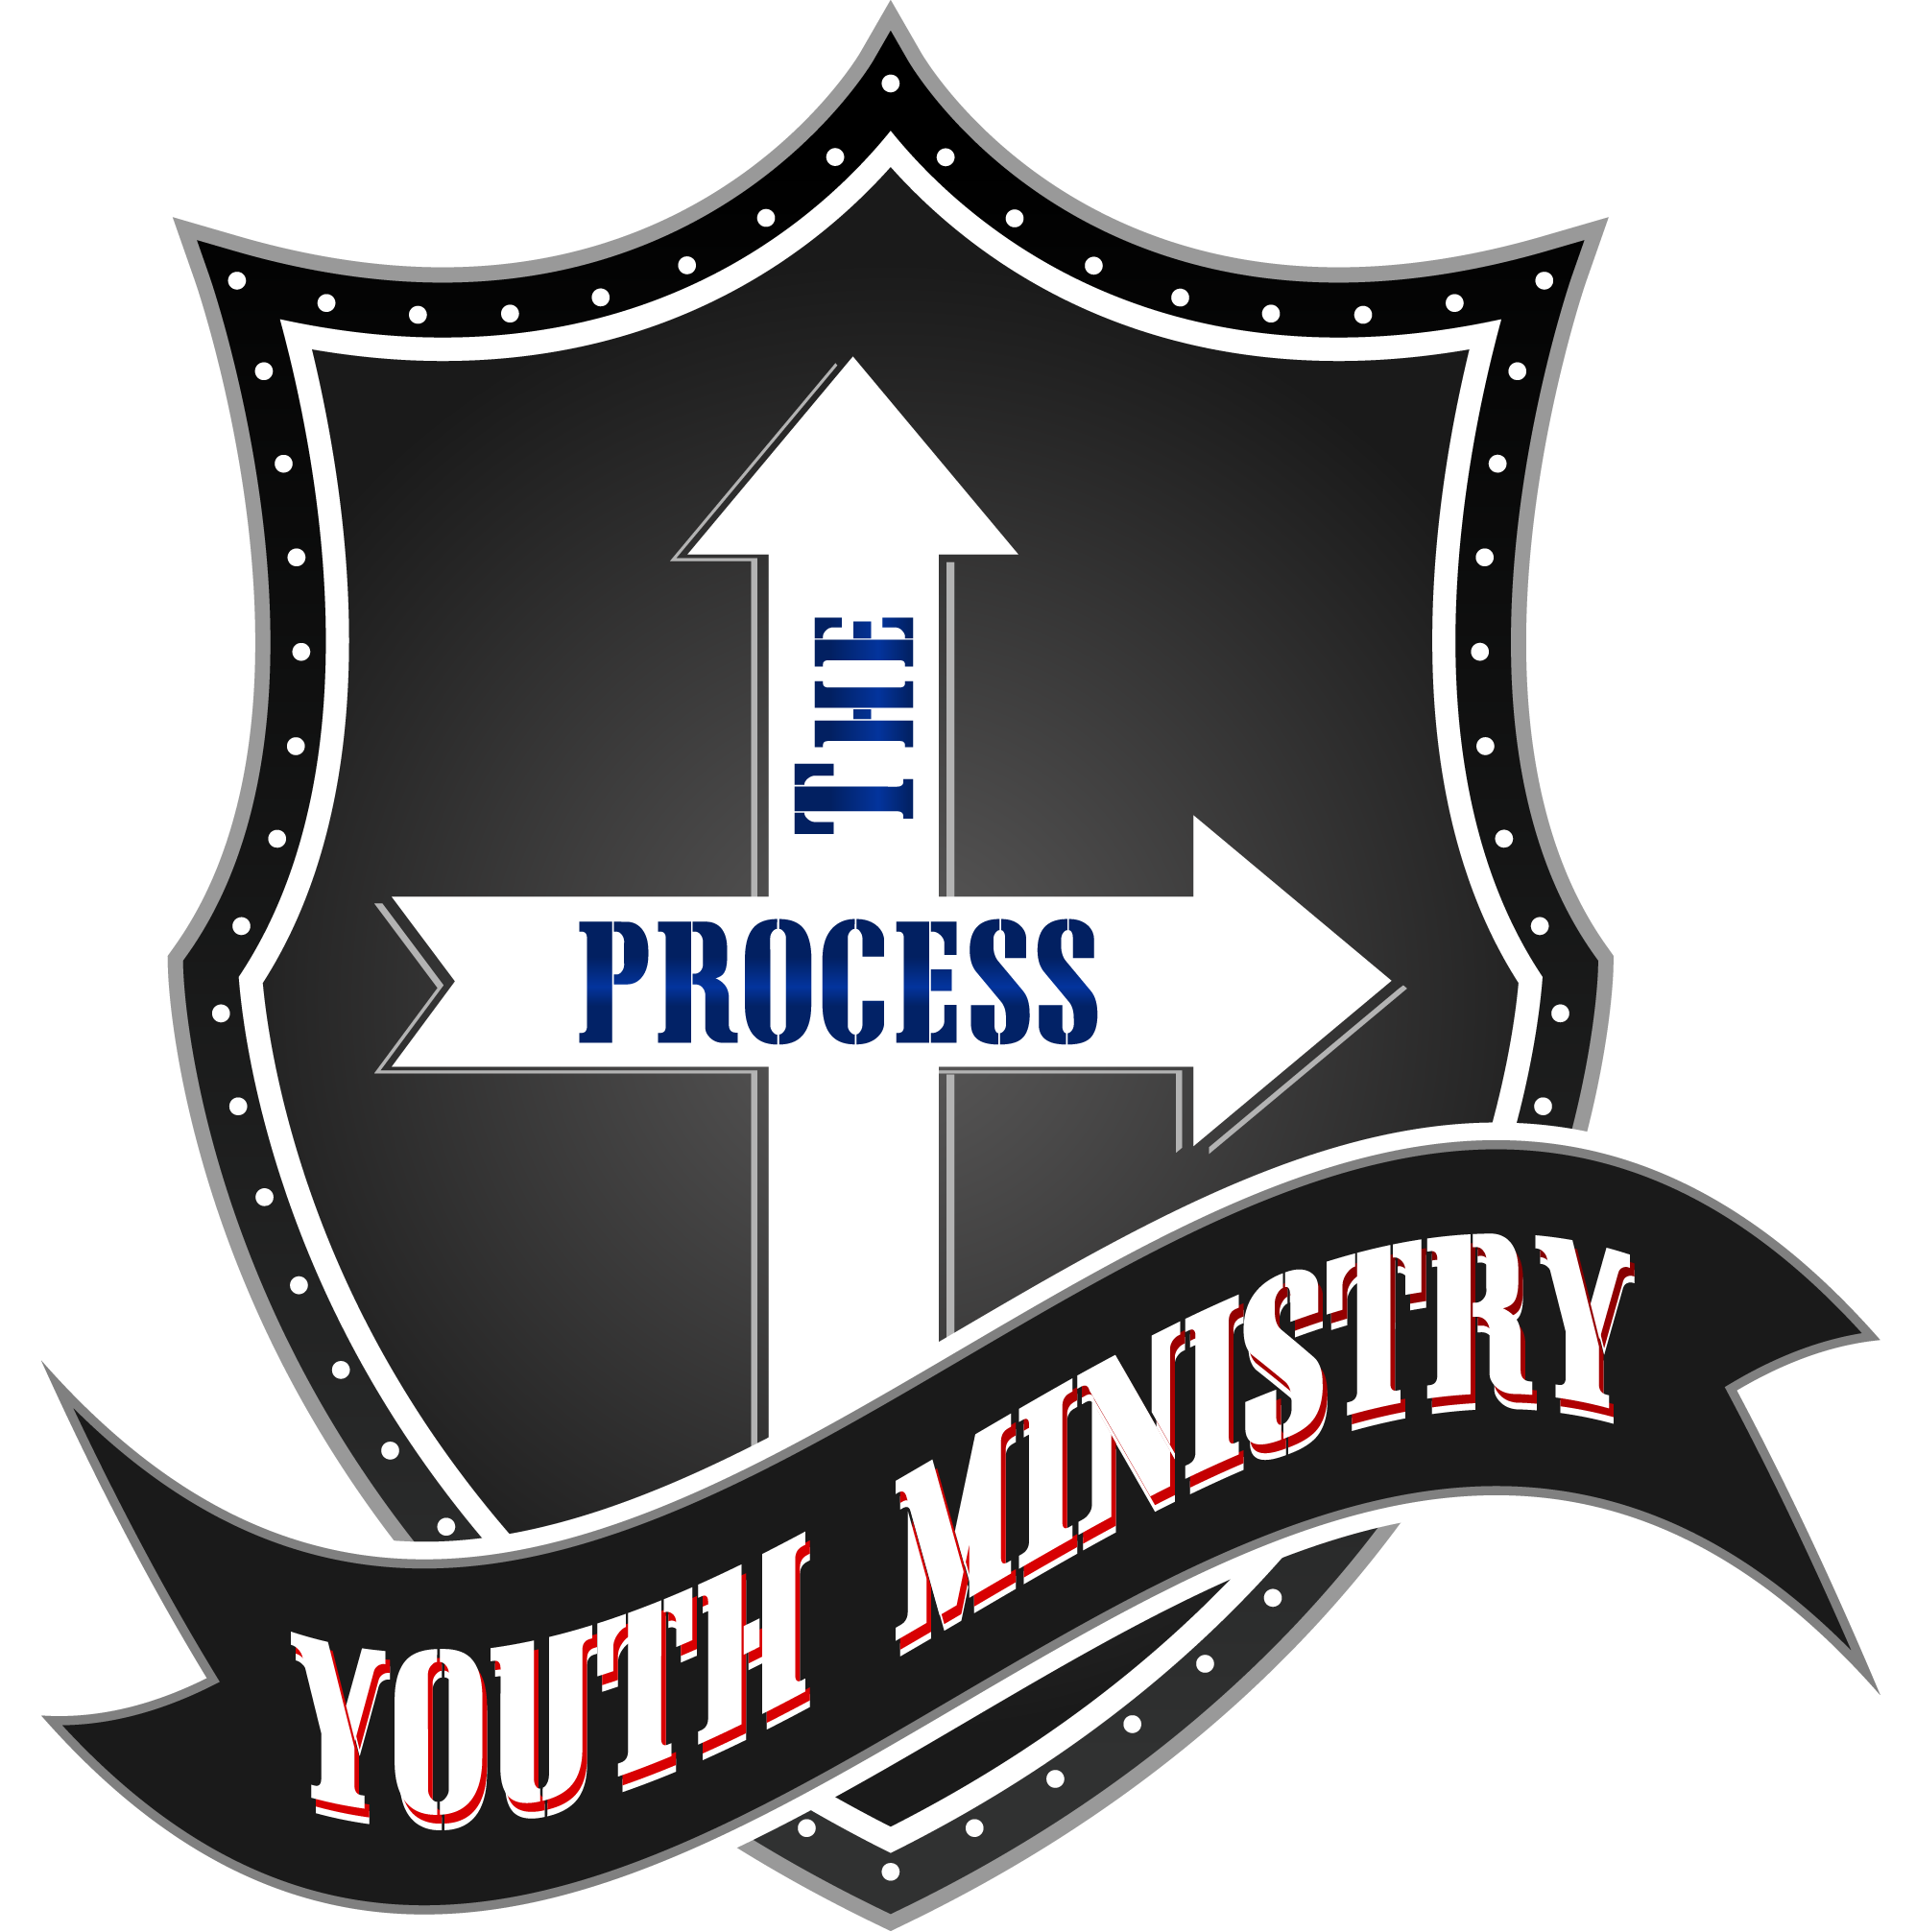 The Process_Logo.png